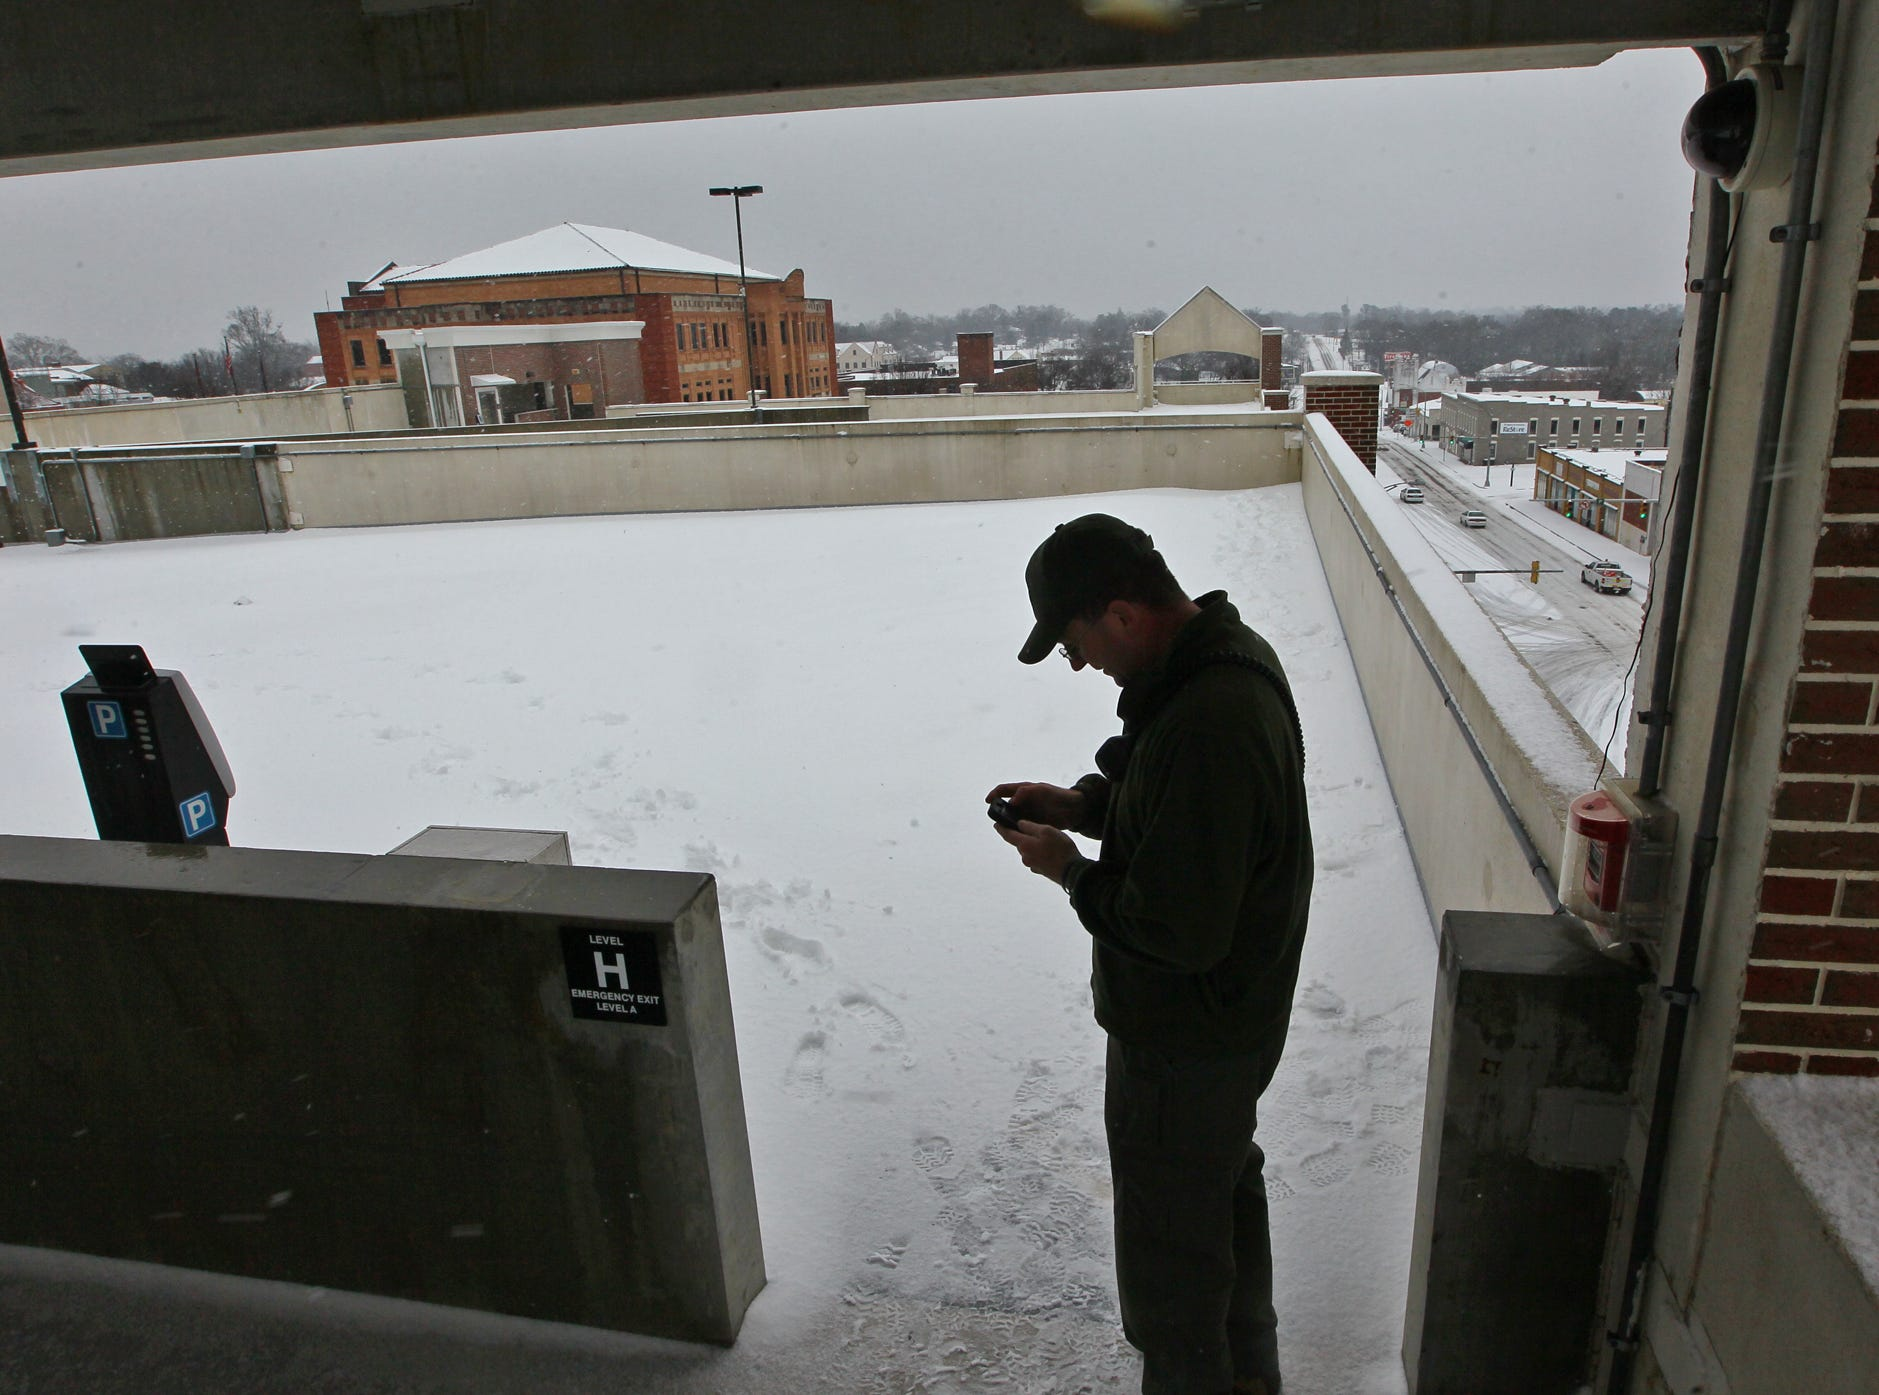 Capt. Matthew Littleton, technical services division of the Anderson County Emergency Operations Center, Tweets a status of the snow storm from the top of the Anderson parking garageduring the first snow of 2014.